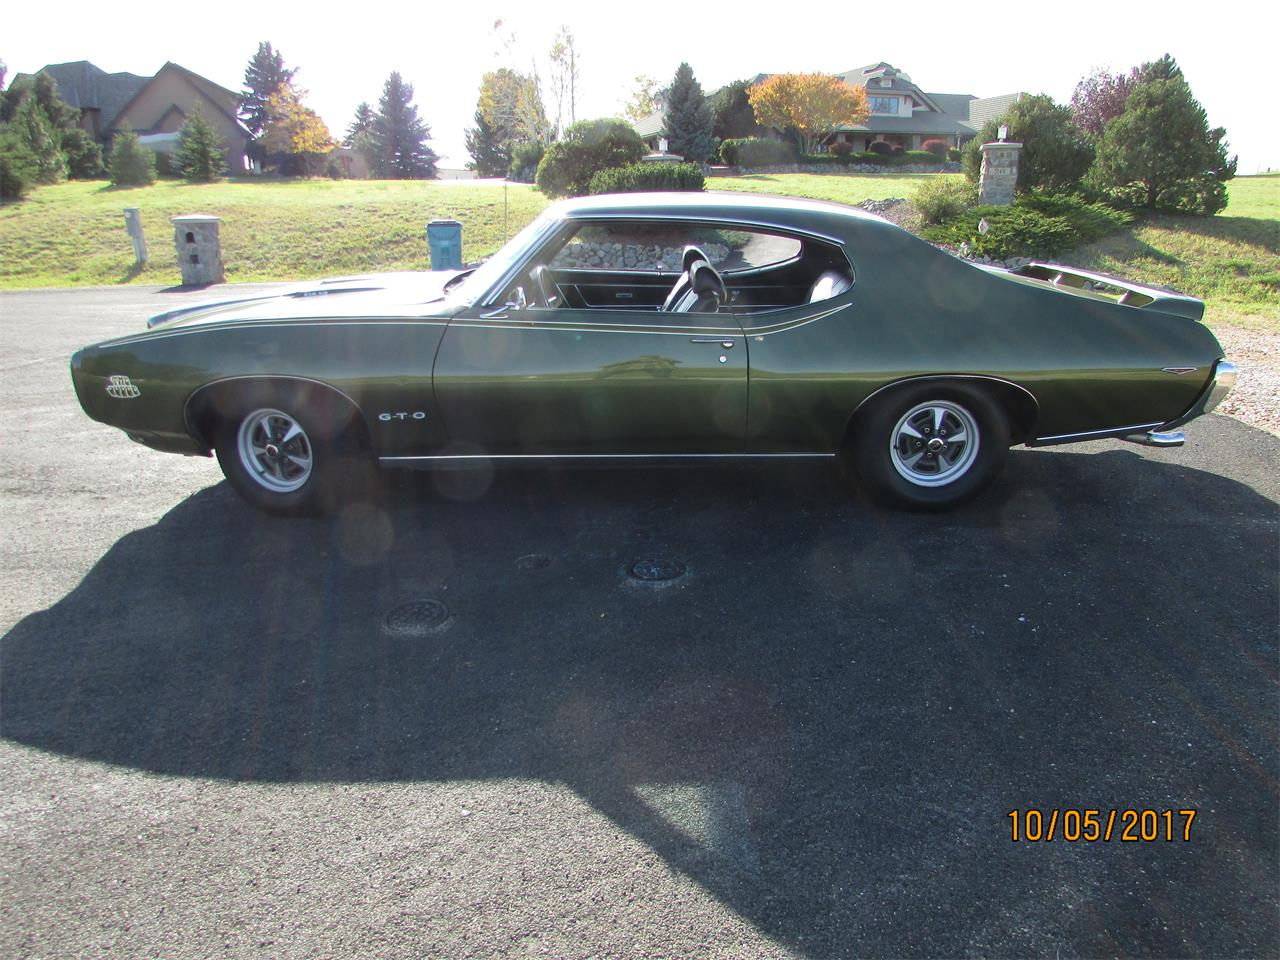 Large Picture of 1969 Pontiac GTO (The Judge) located in Colorado Offered by a Private Seller - N3XH